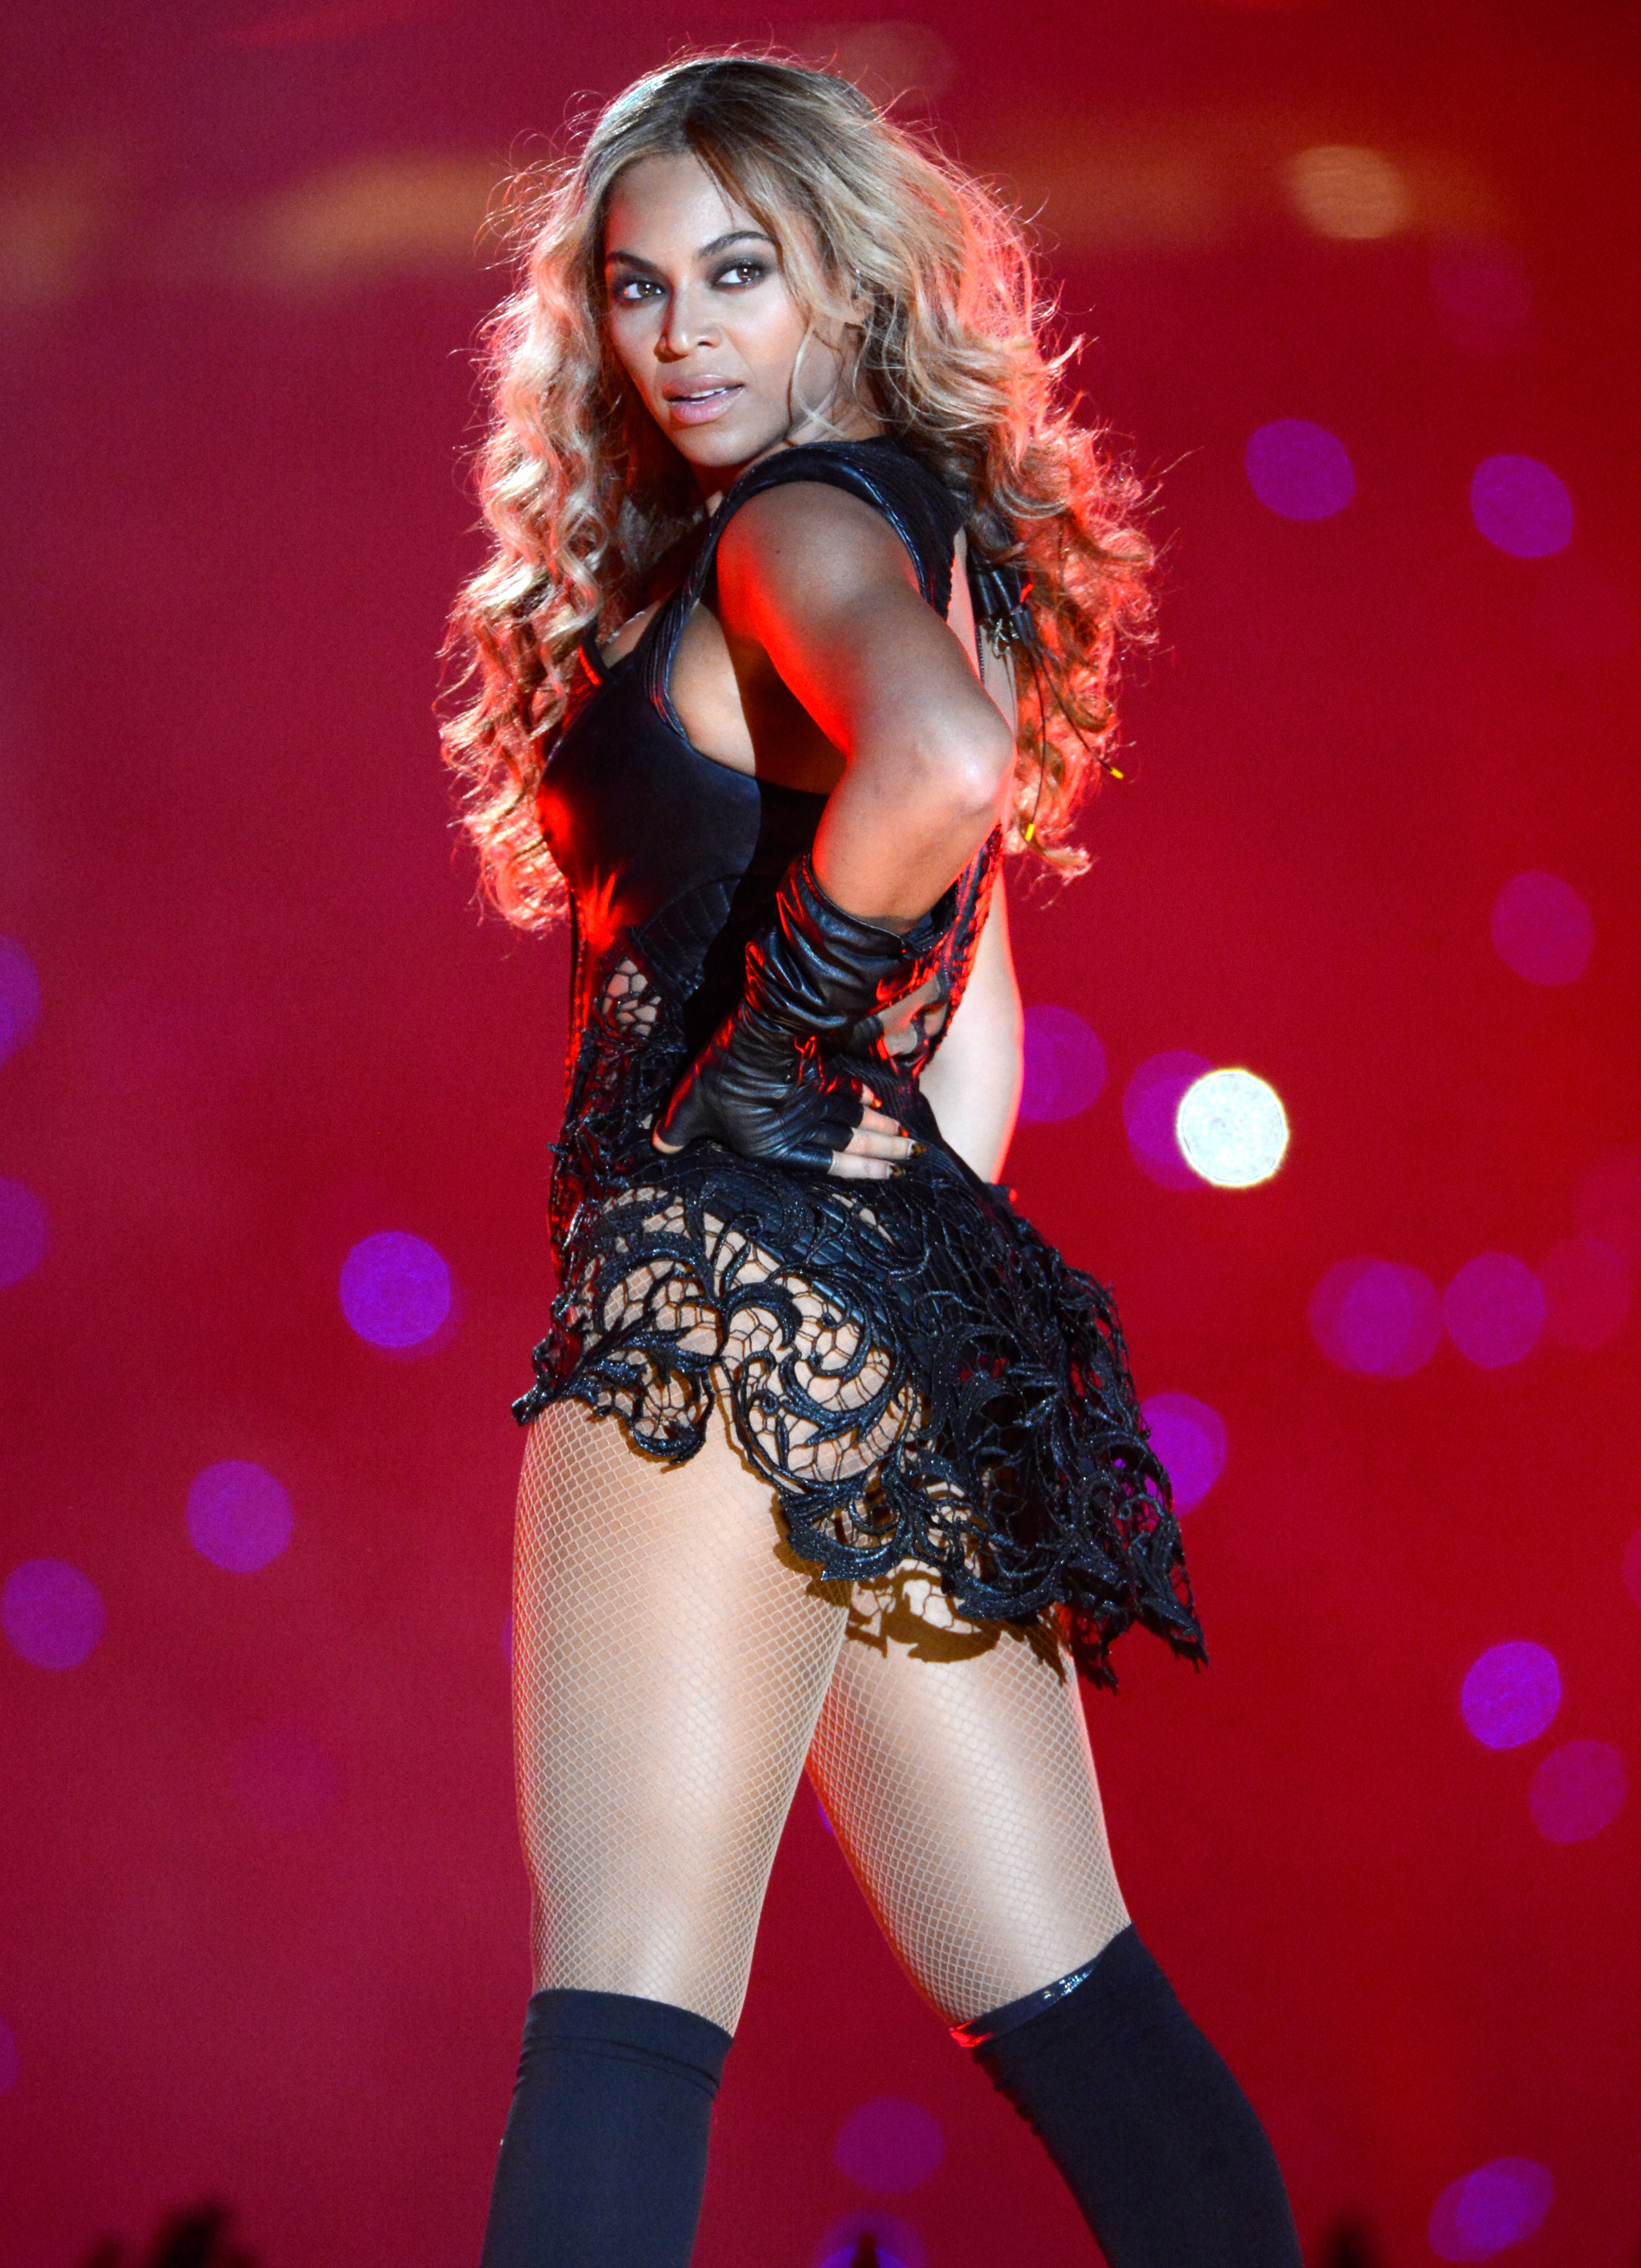 Beyonce performs during the Pepsi Super Bowl XLVII Halftime Show at Mercedes-Benz Superdome on February 3, 2013 in New Orleans.